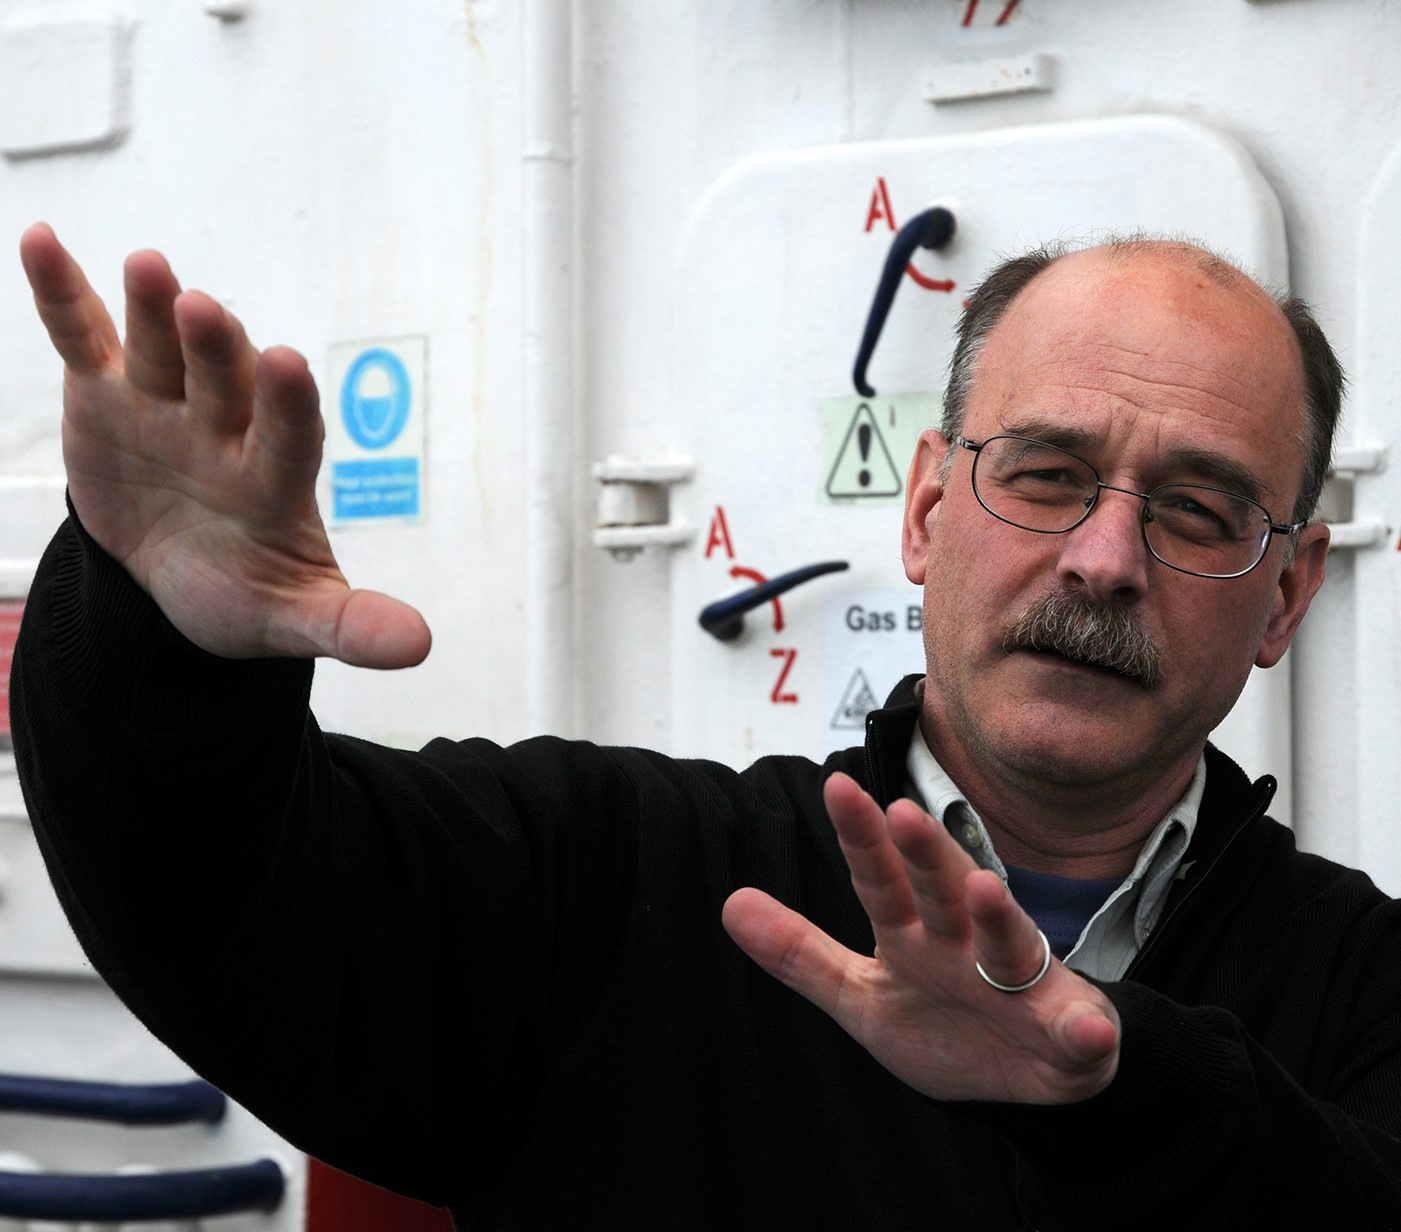 Professor Hannington is standing on the deck of a research vessel. He is wearing a black sweater, and his arms are raised and pointing towards the camera as he is explaining something.